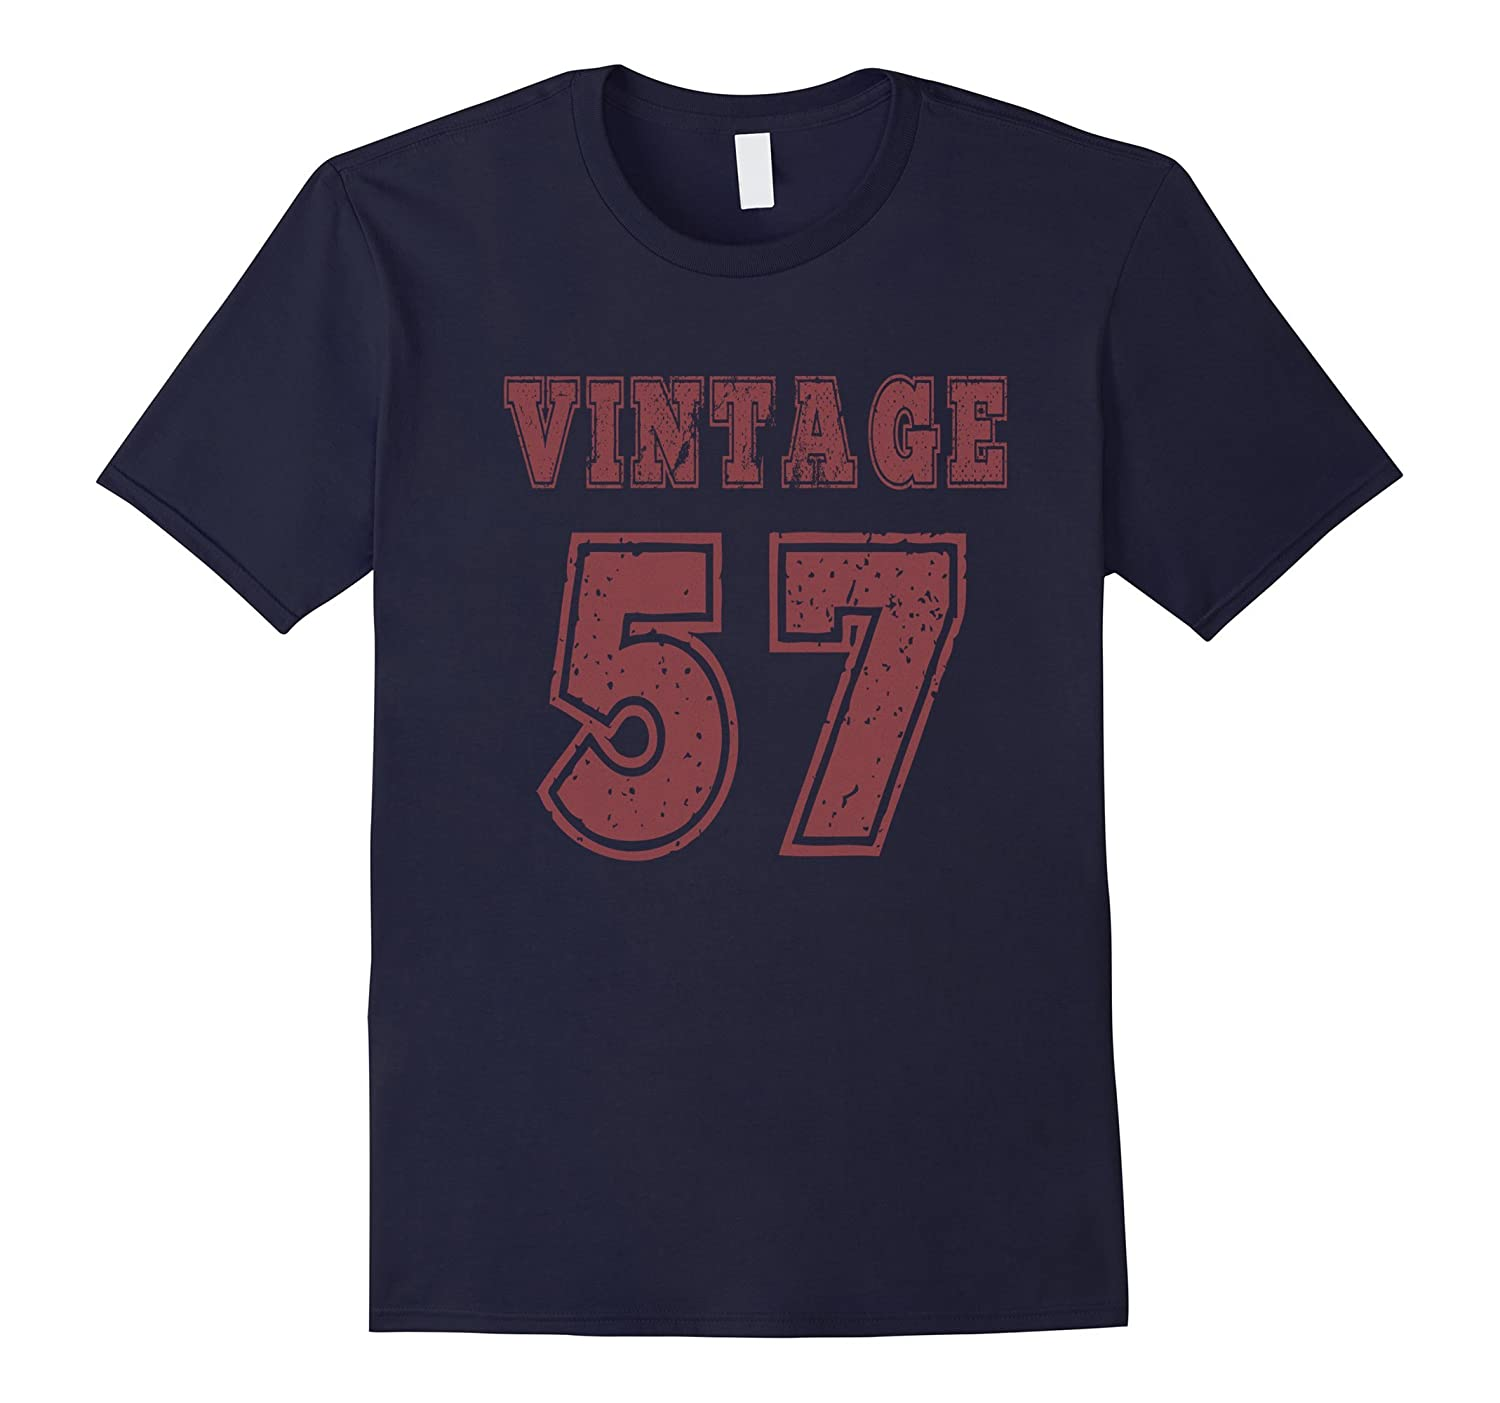 1957 Vintage Birthday Gift T-shirt For Men Women-CD